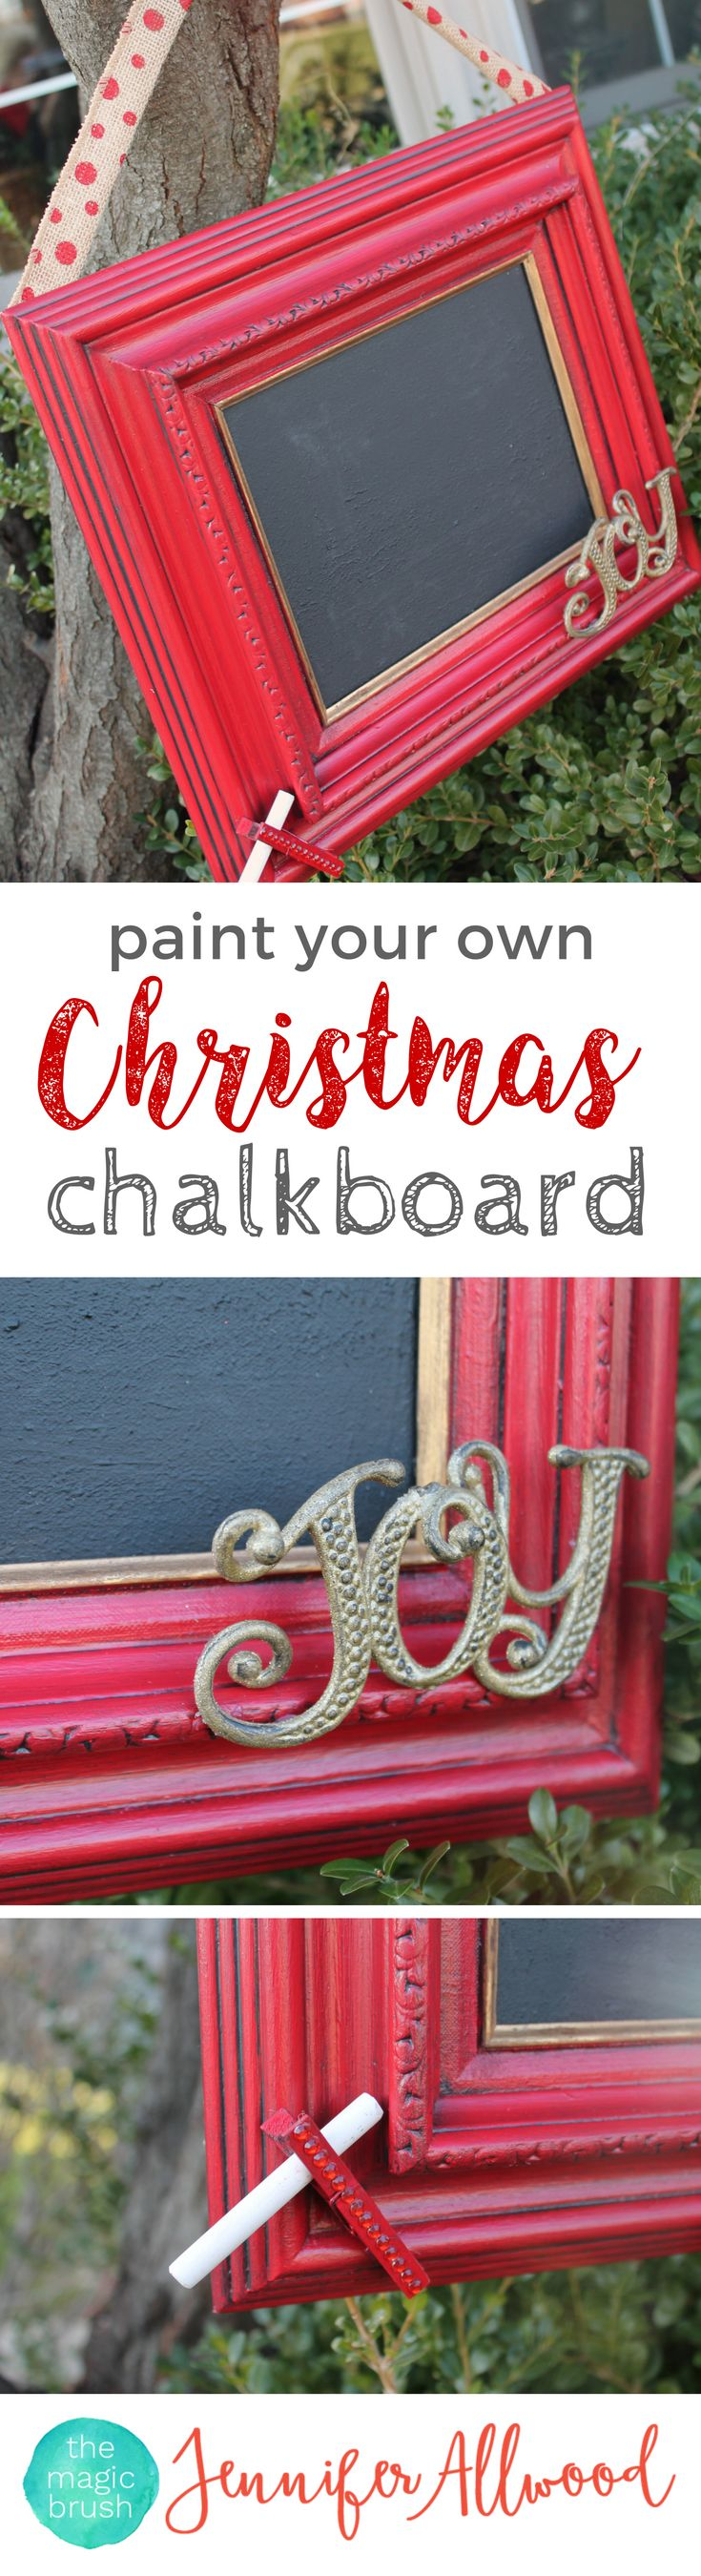 DIY Christmas Chalkboard Sign | The Magic Brush | These DIY painting projects make great personalized Christmas gifts. Easy to customize and fun to make!